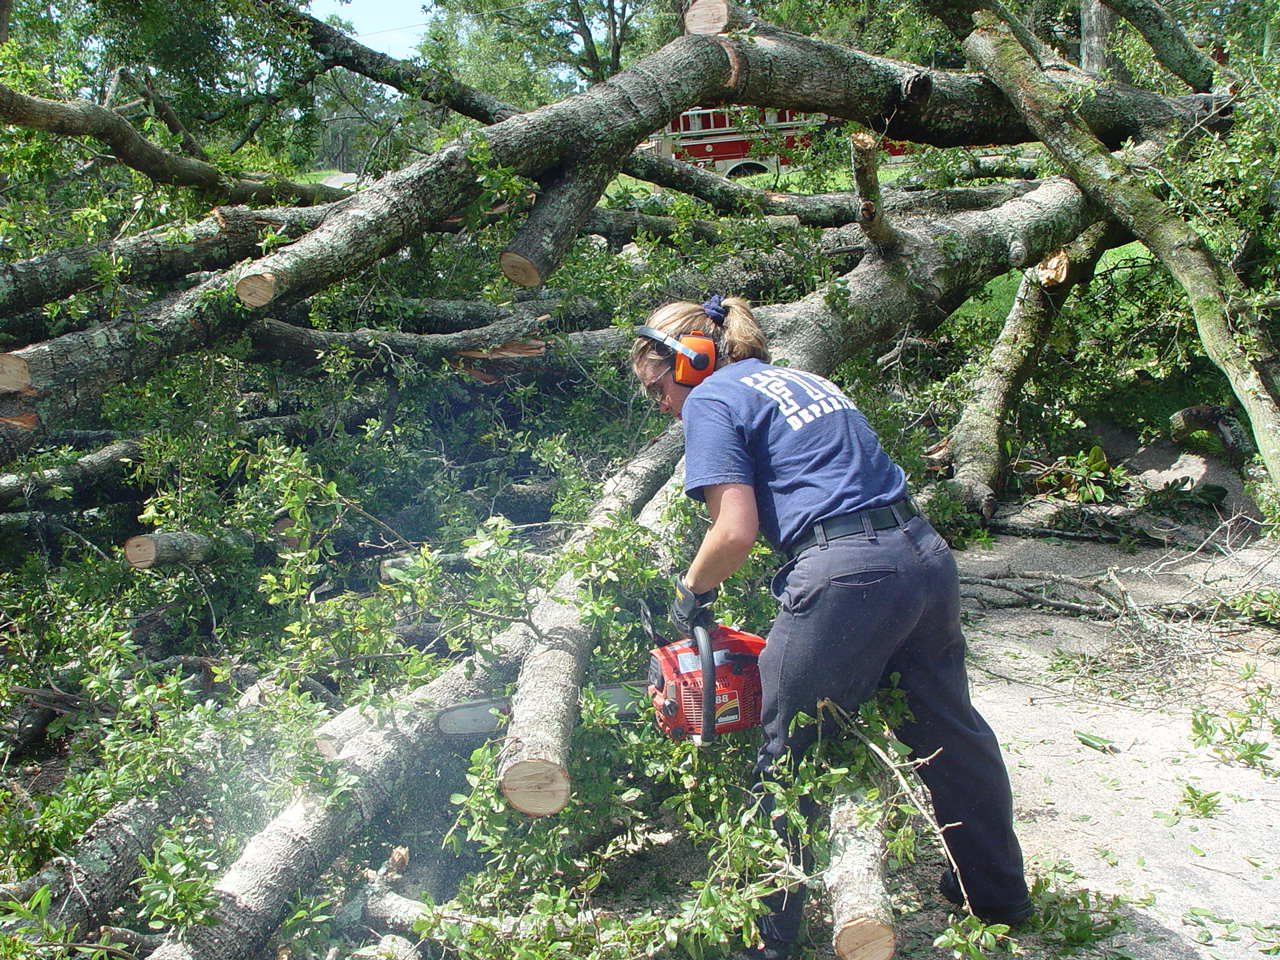 Worker cuts up a tree after a tornado